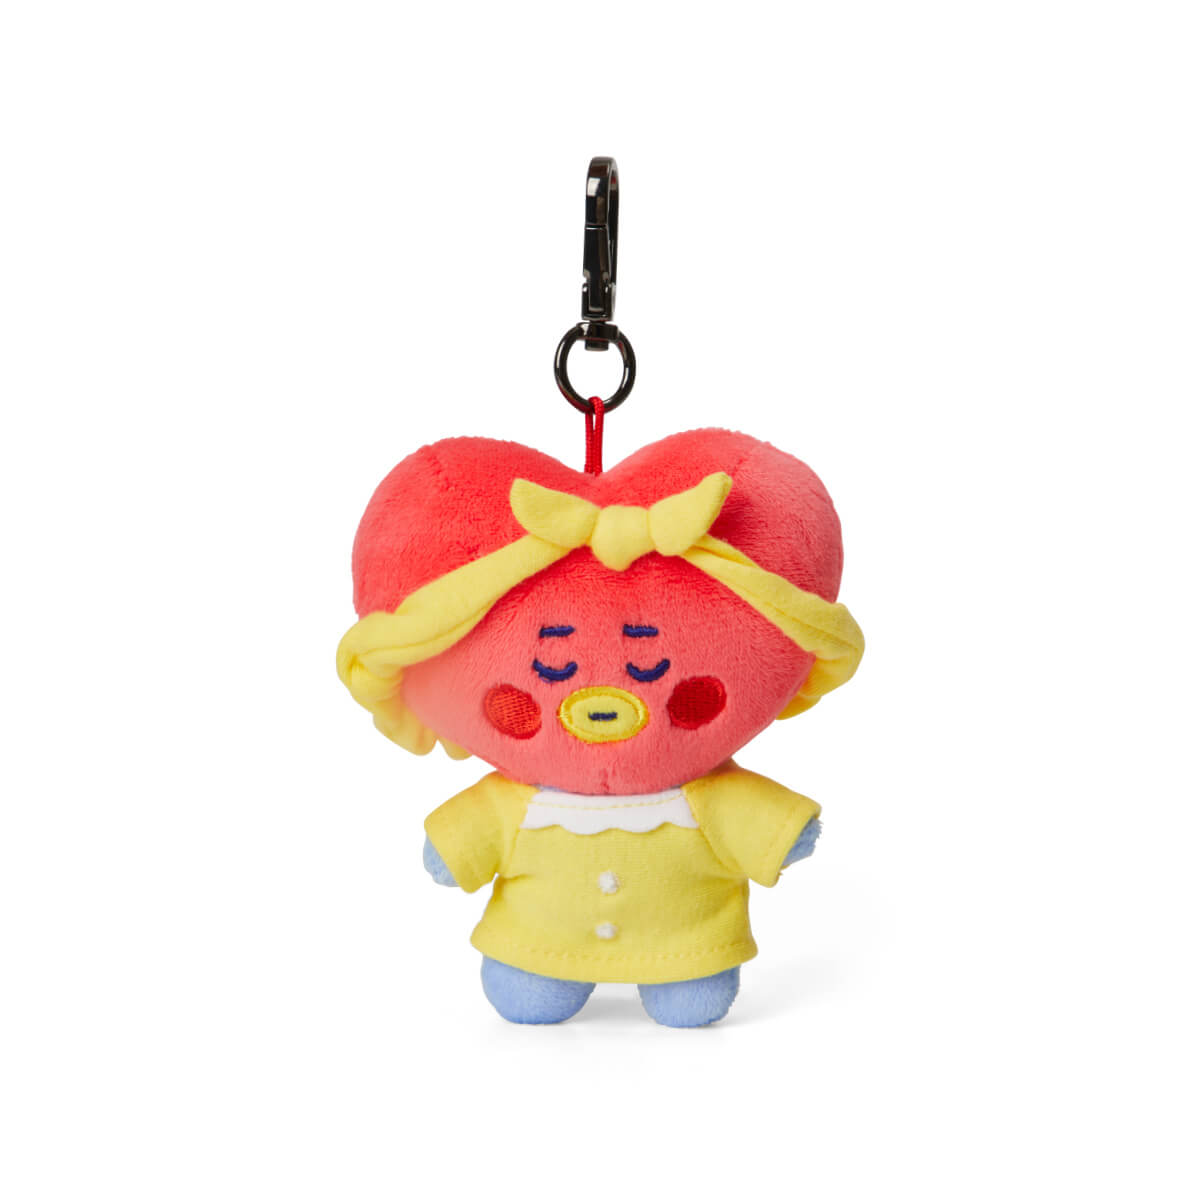 BT21 TATA Dream of Baby Bag Charm